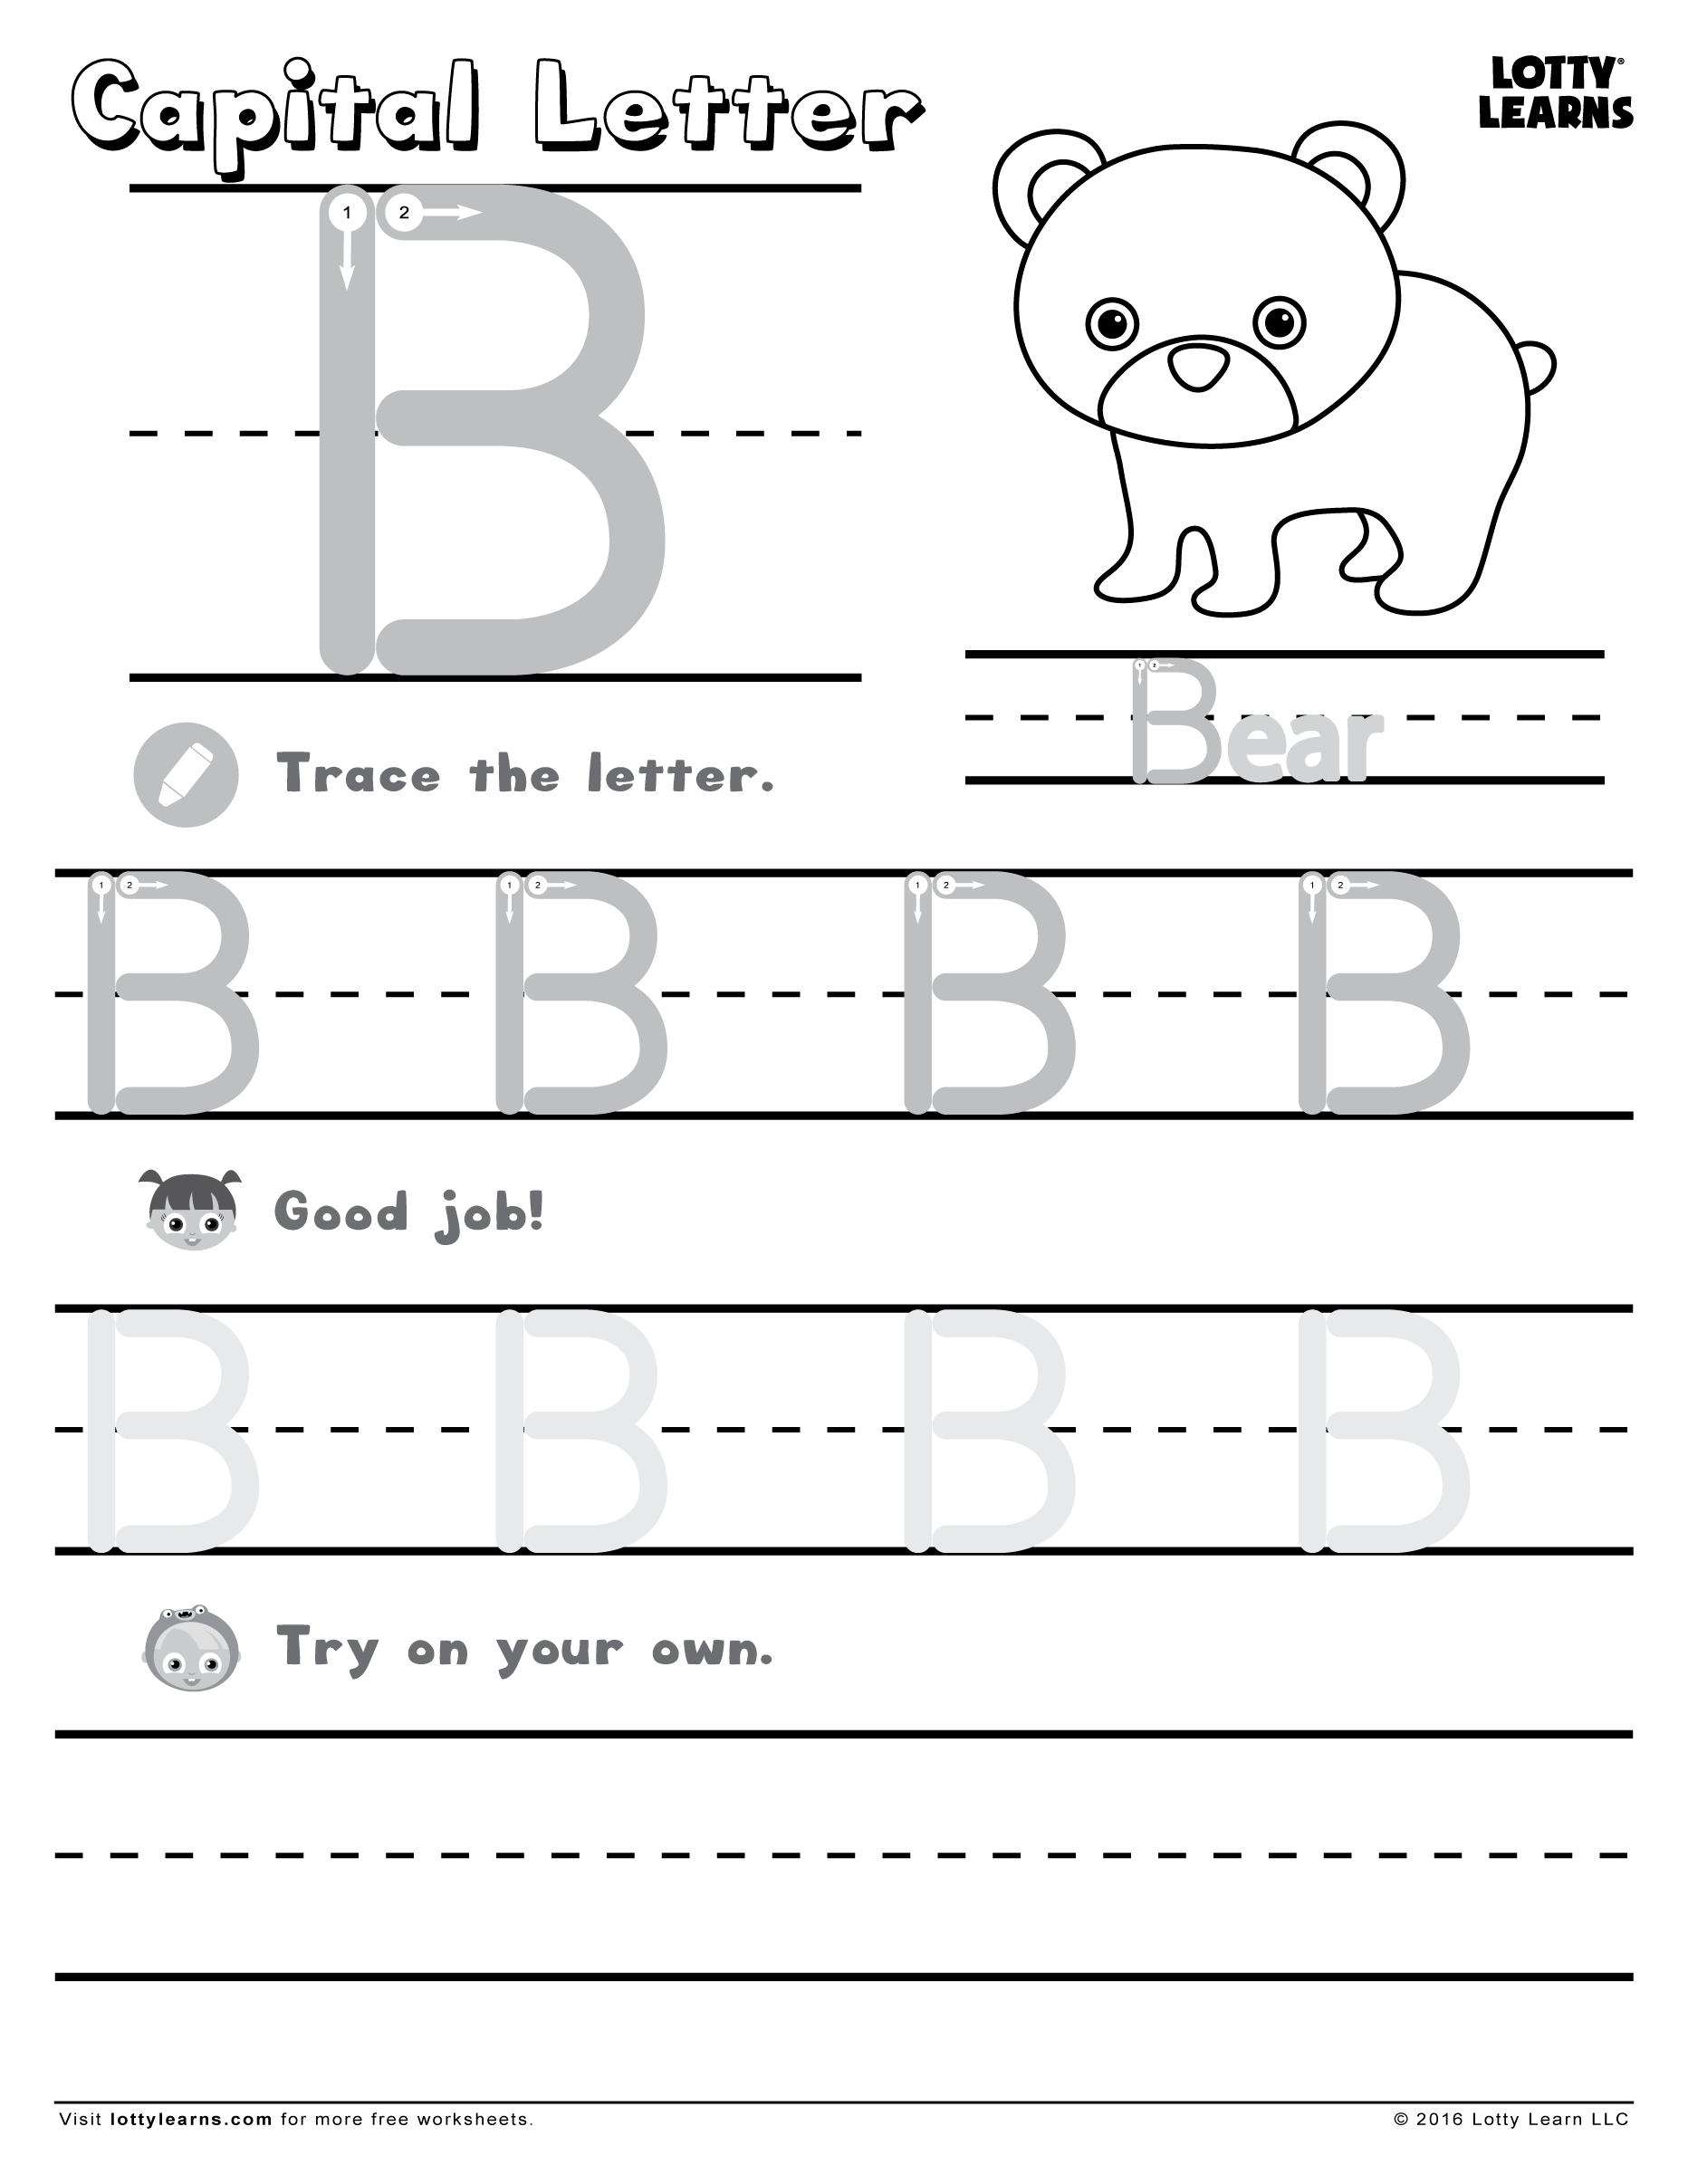 18 Letter B Worksheets For Practicing | Kittybabylove